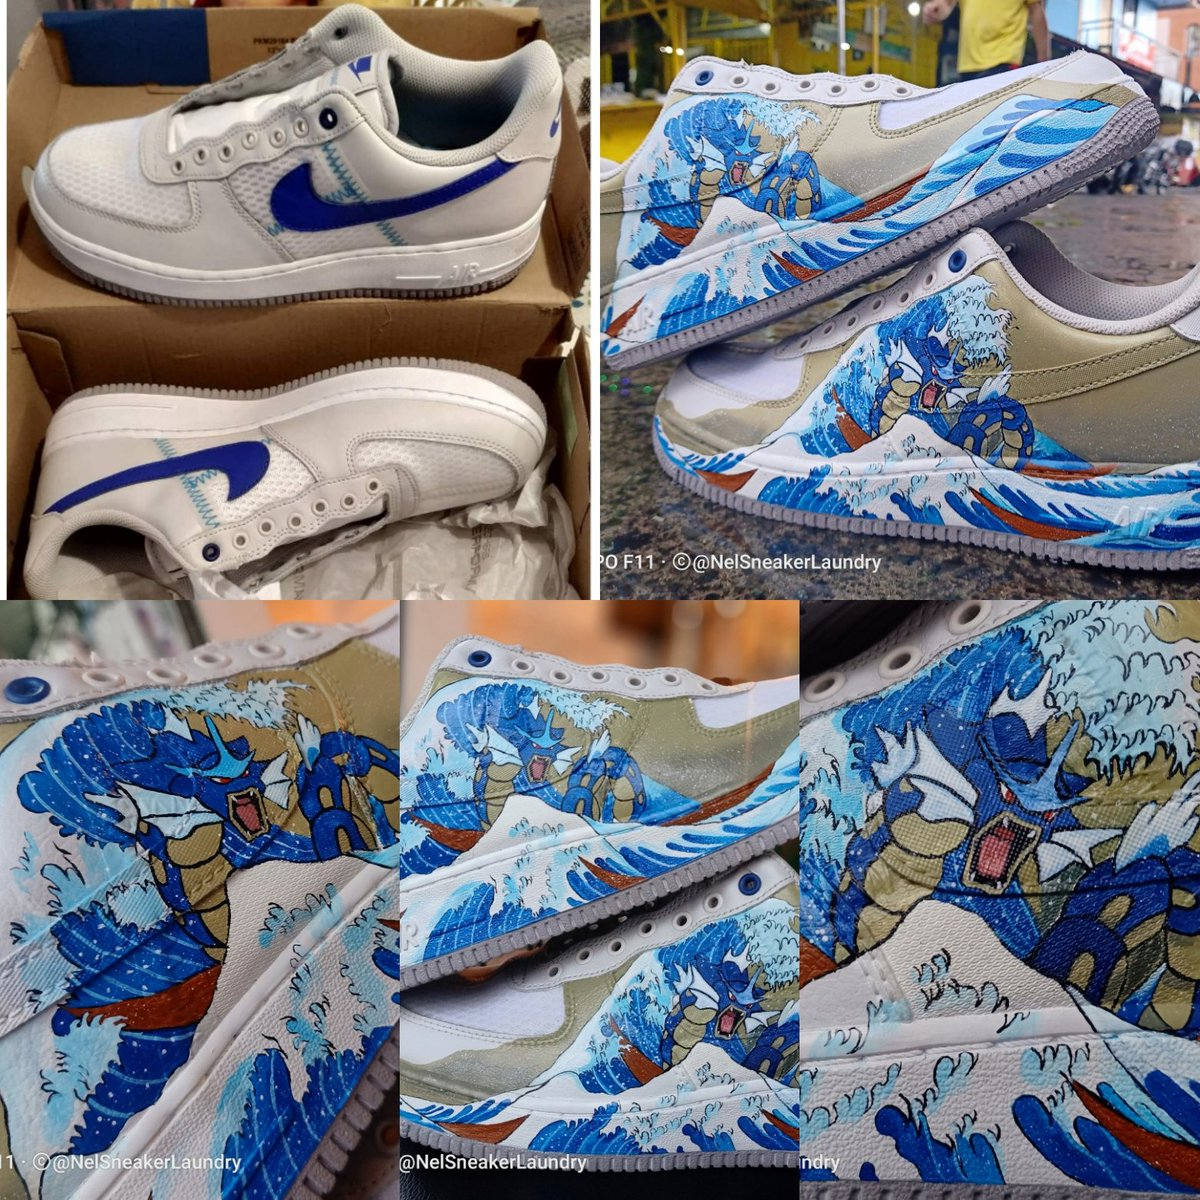 For Sharing Before and After Nike Airforce1 The Great Wave off Kanagawa, Gyarados Edition Customized.  Only at NEL Sneaker Laundry SHOP  #TheCobblersPh #Pintados #NelSneakerlaundrypic.twitter.com/WK7VGufQ1Y